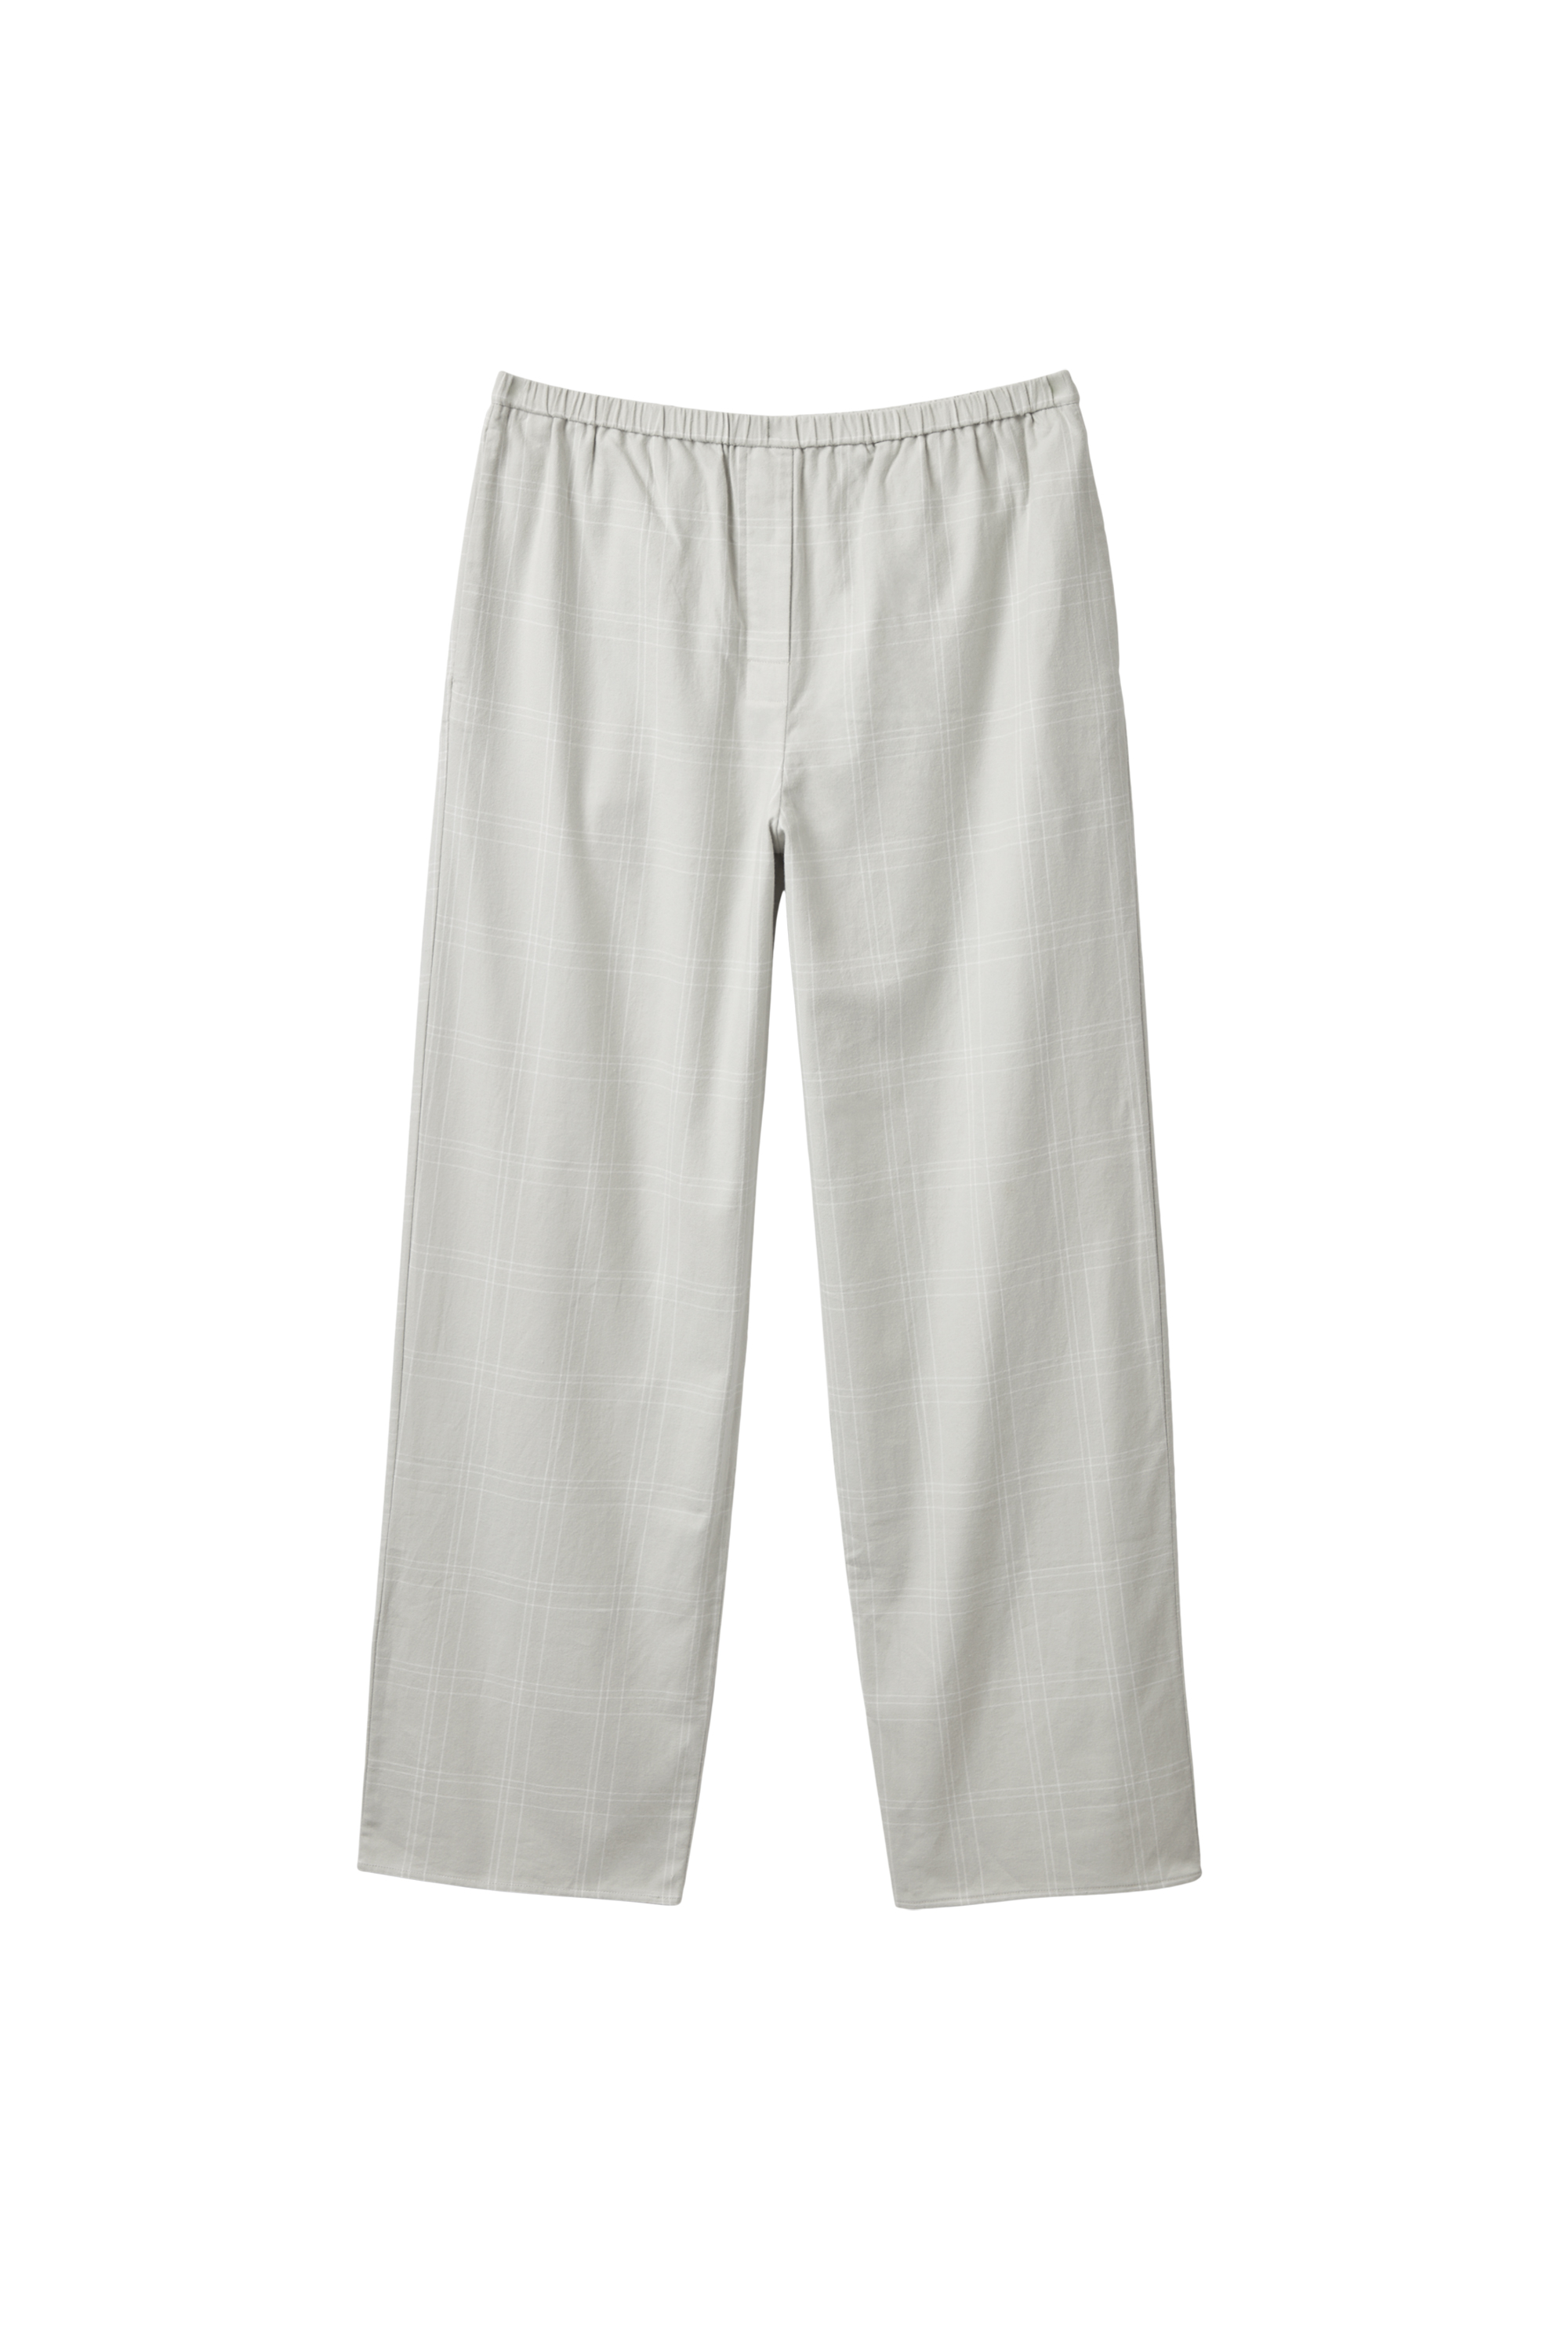 COS_Trousers_AED200